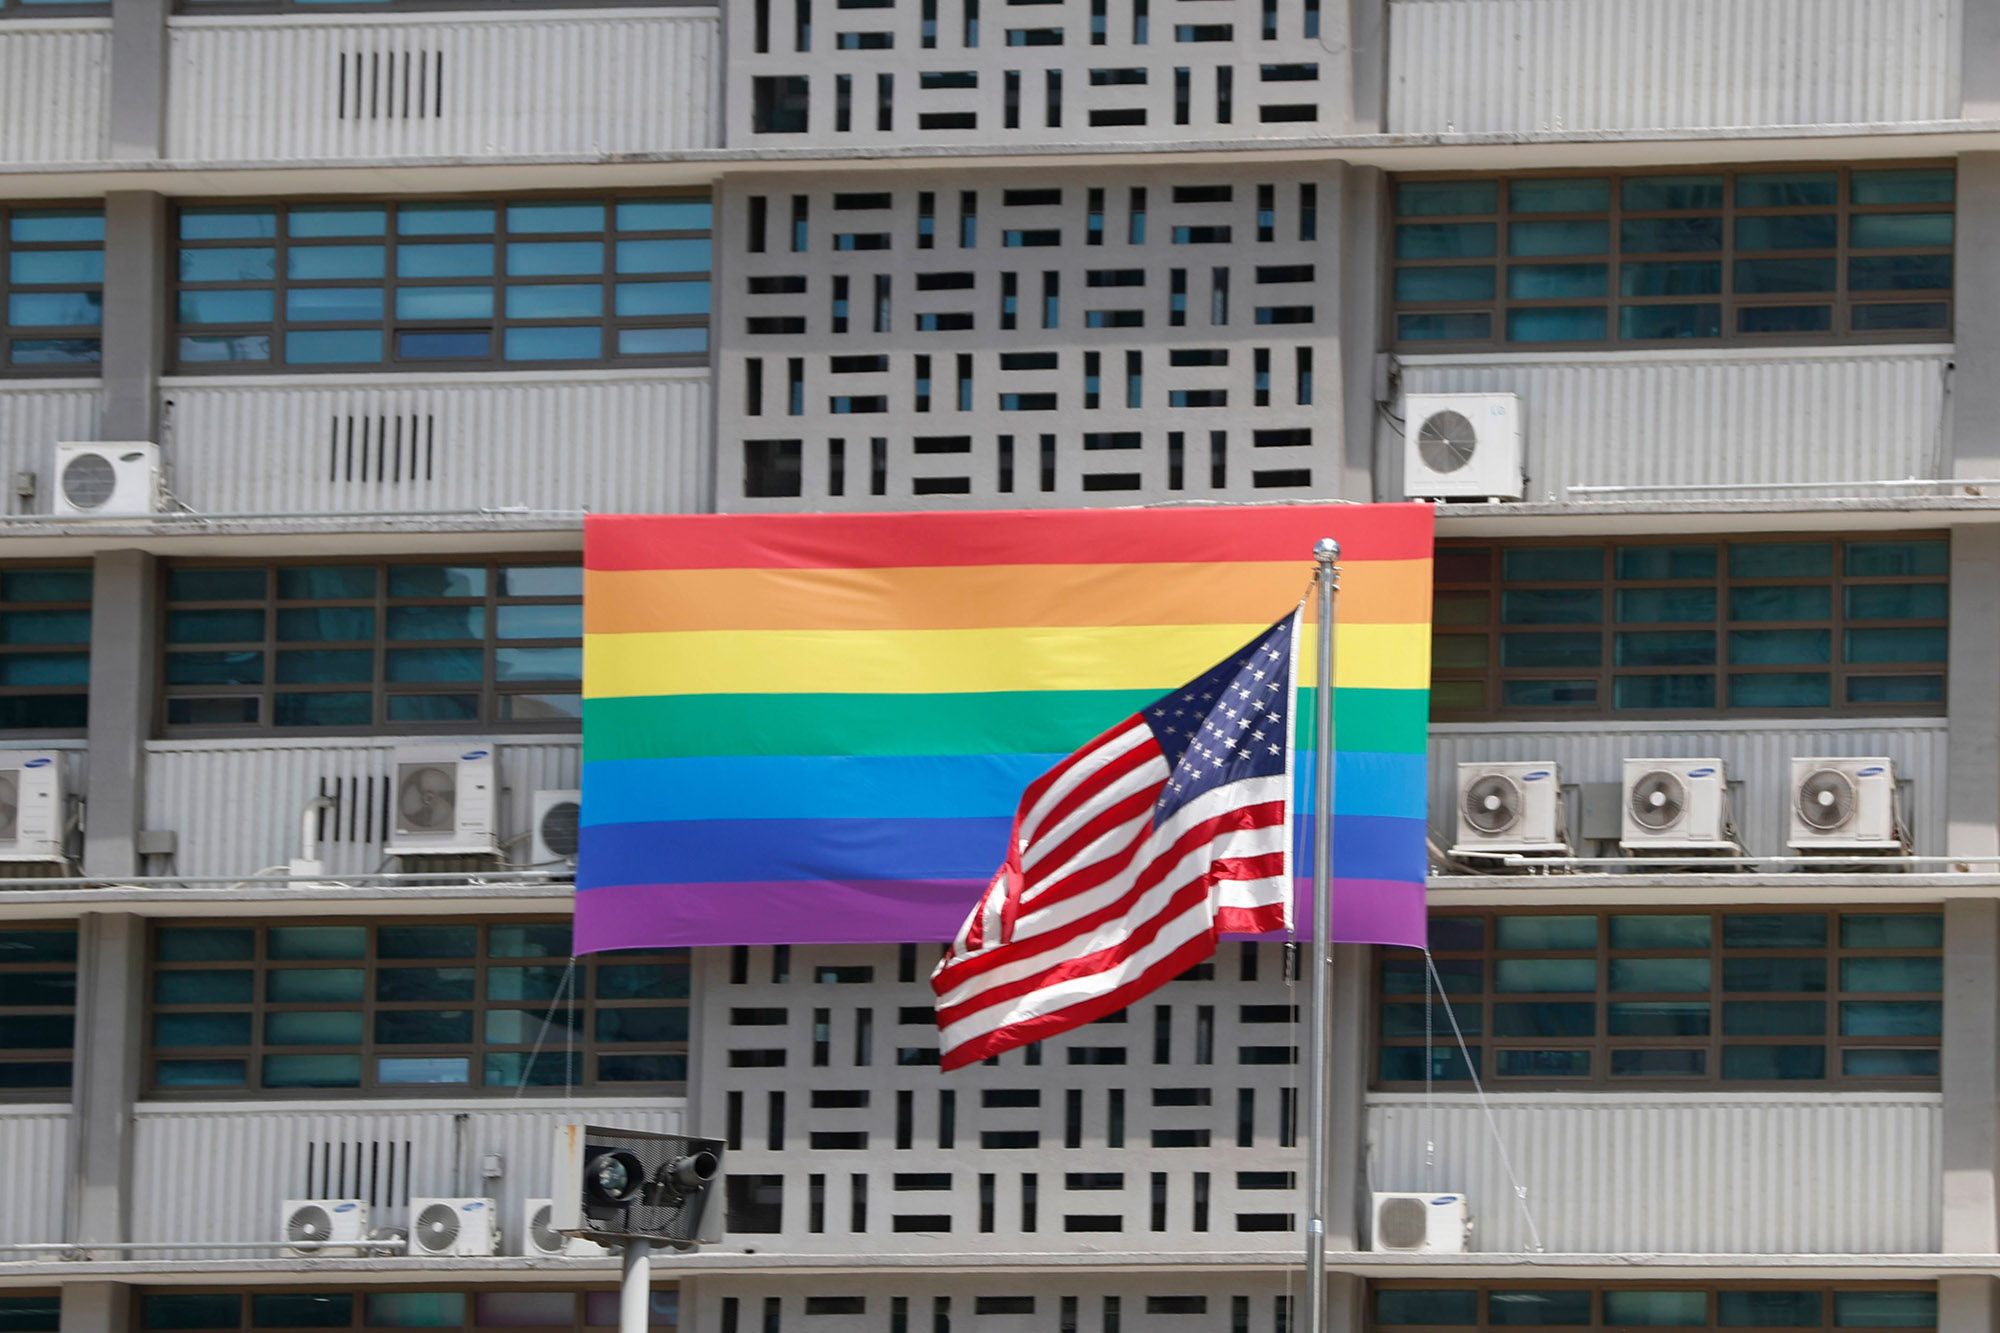 Trump Administration Blocks Embassies From Flying LGBTQ Flags for Pride Month